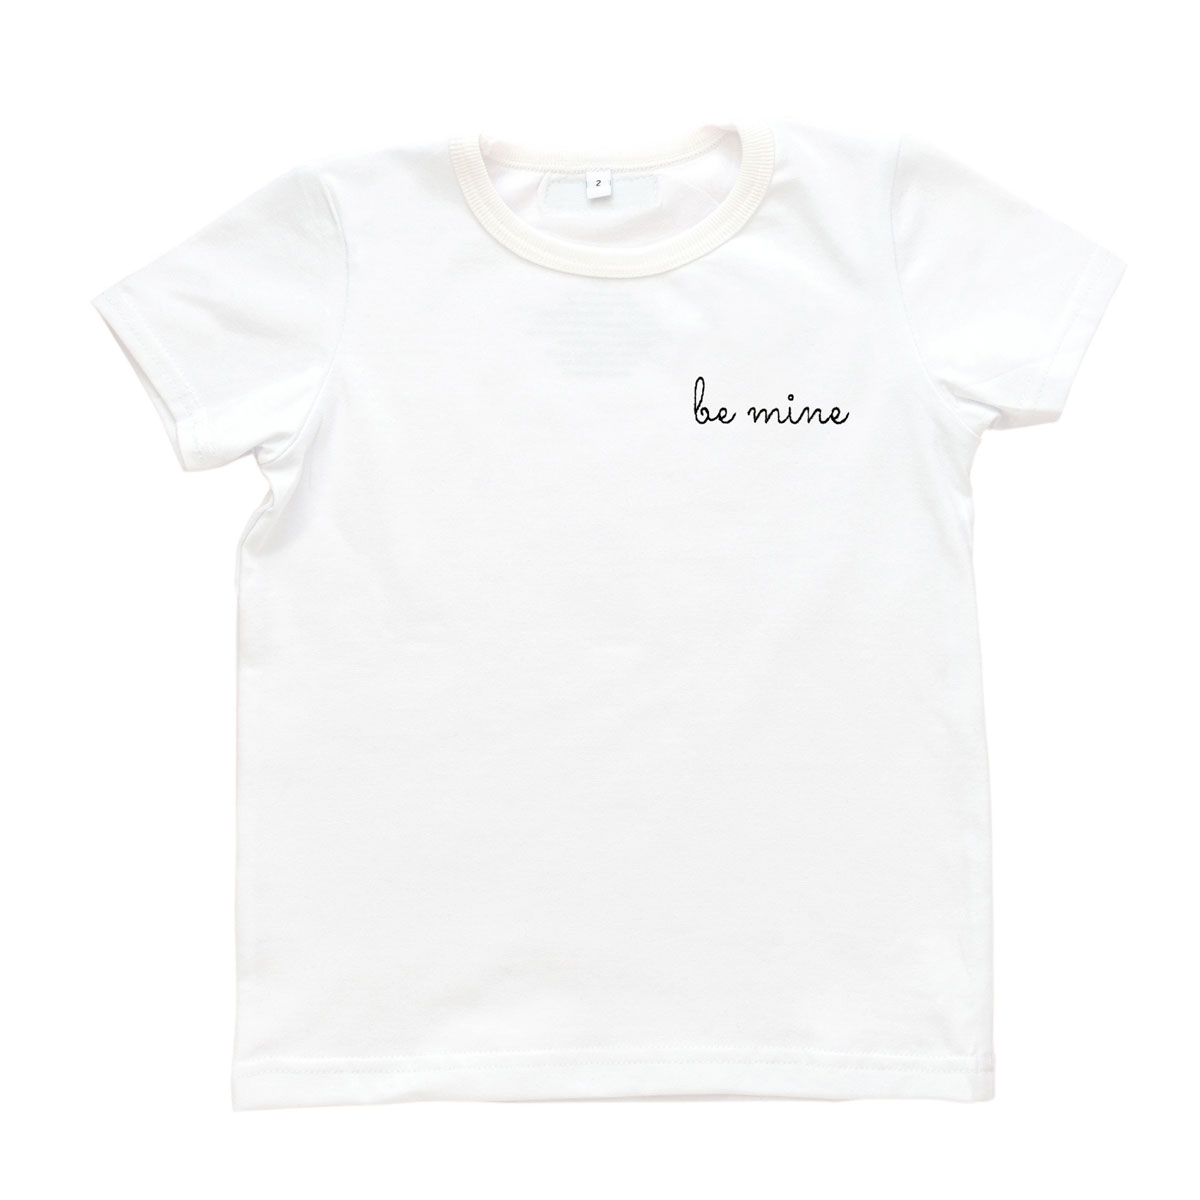 Early Riser Short Sleeve Tee in White with Black Be Mine Embroidery